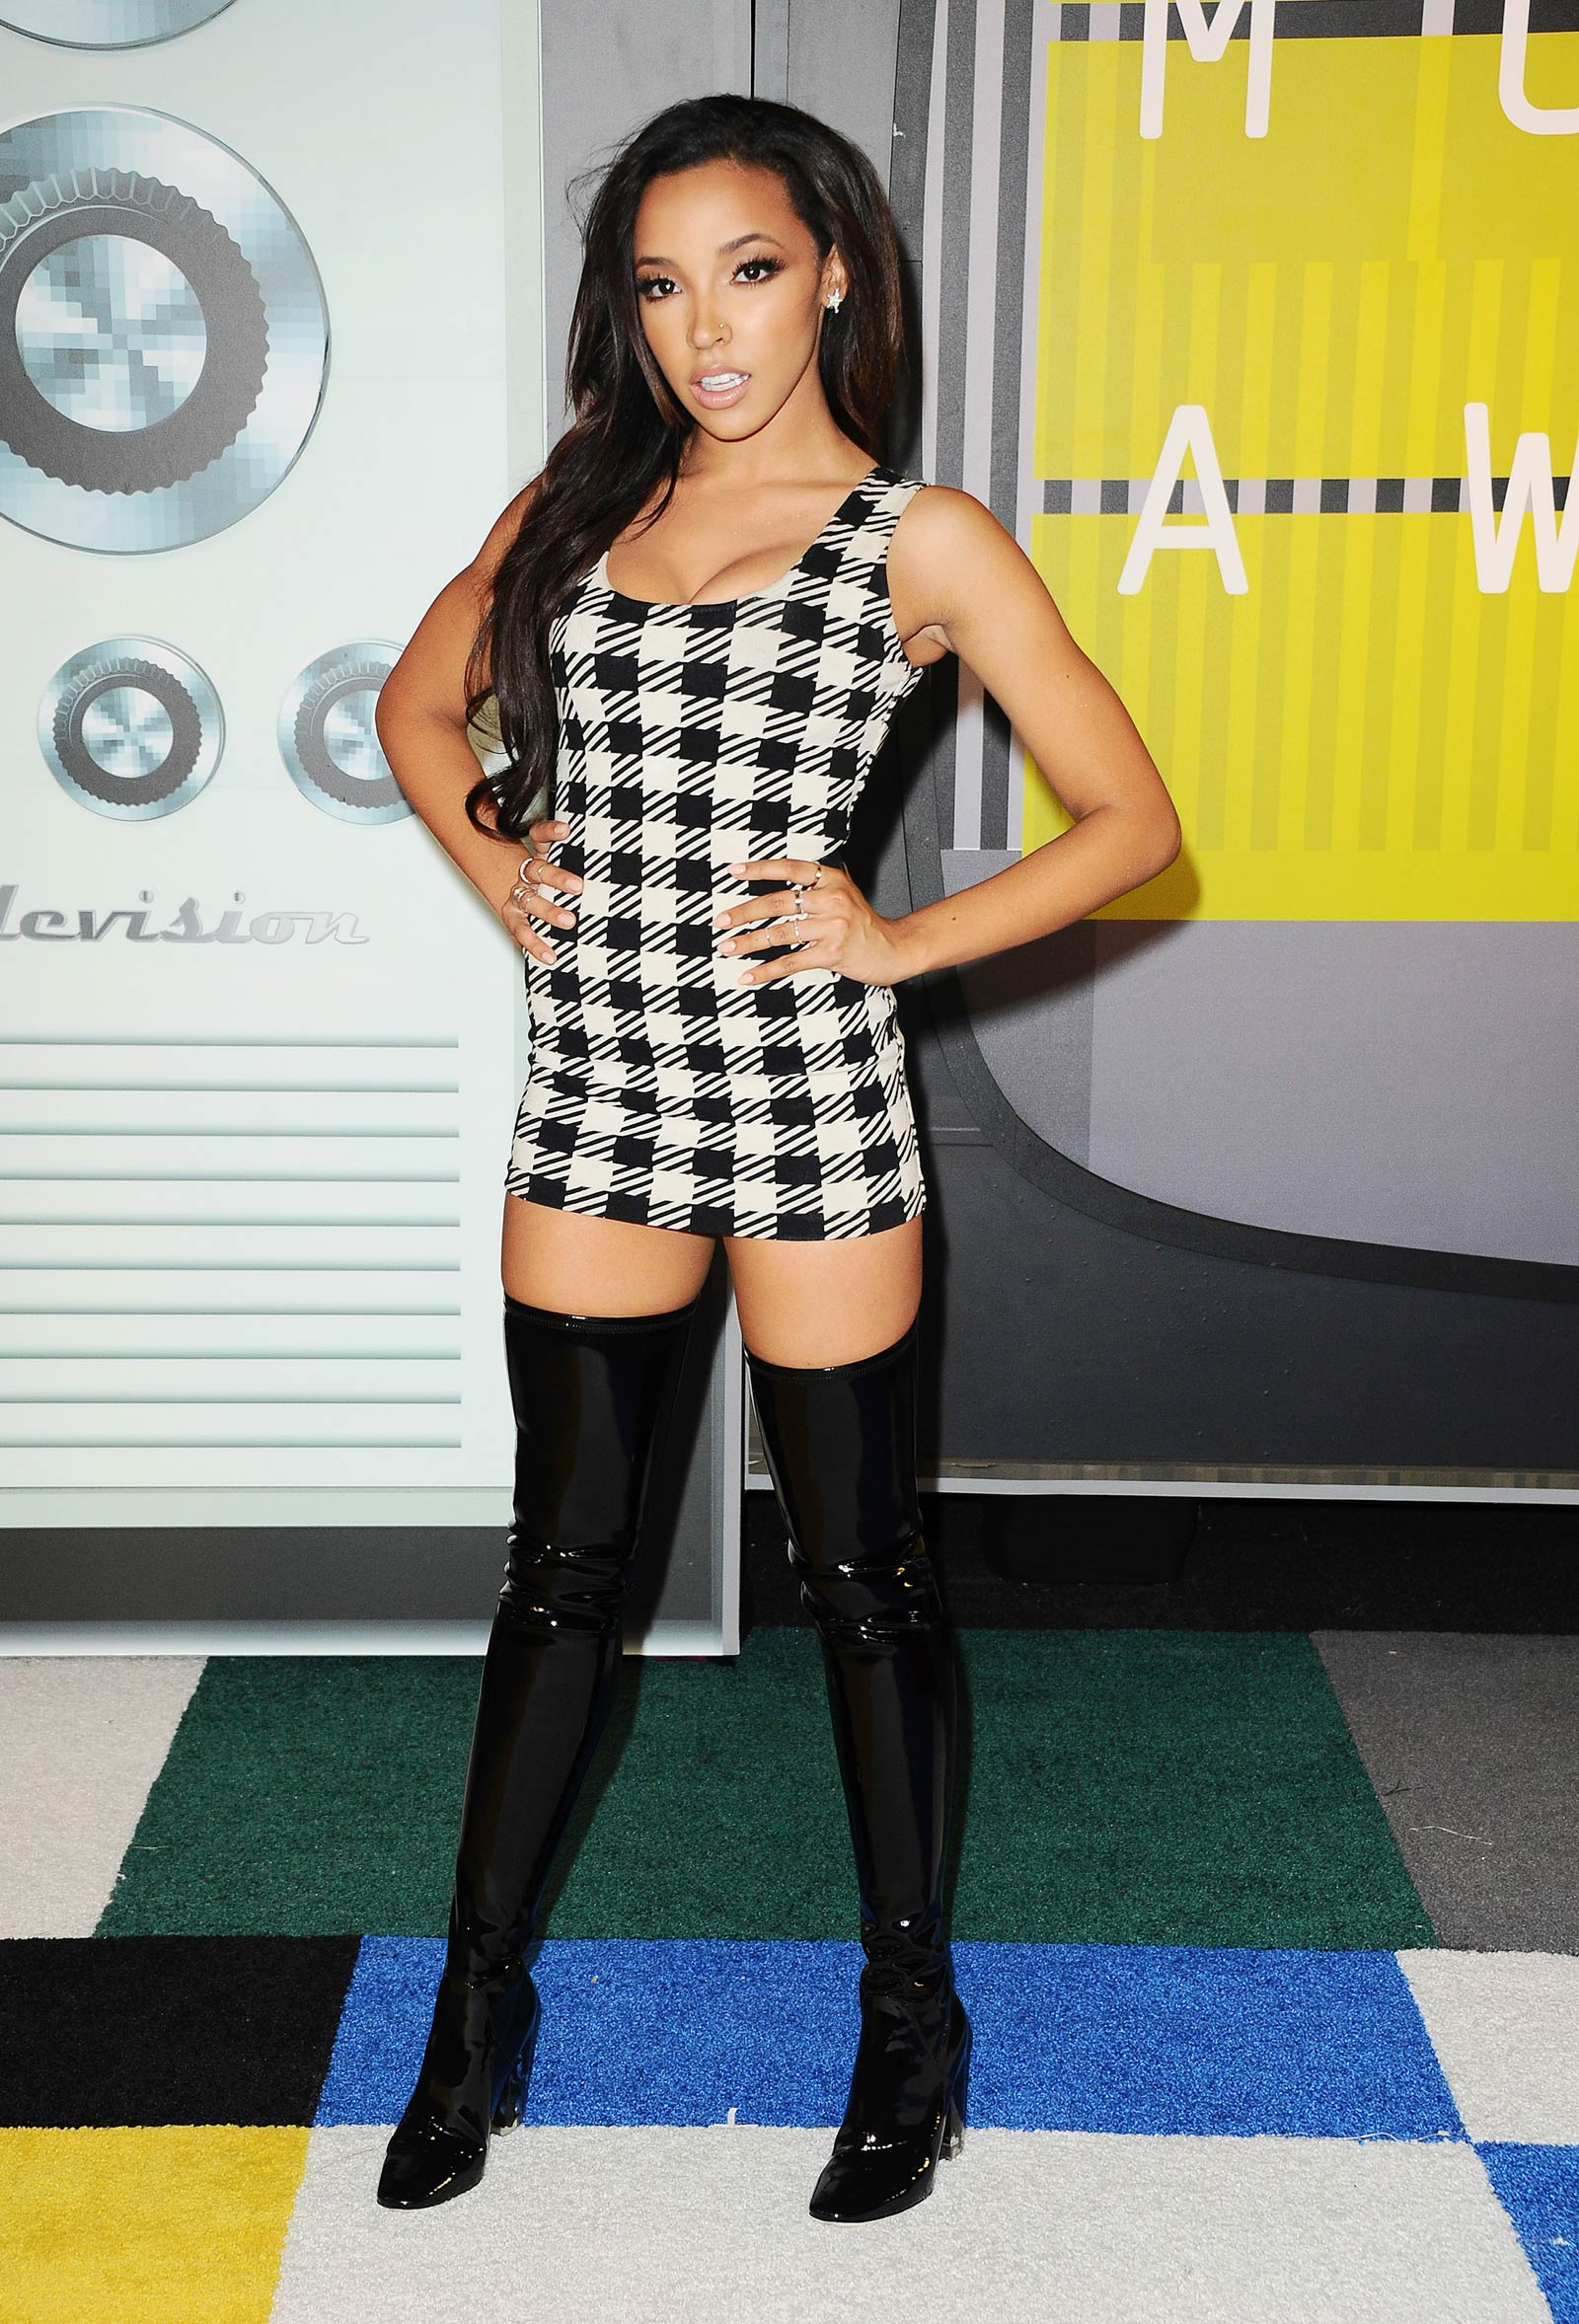 Tinashe on the red carpet at the 2015 MTV Video Music Awards